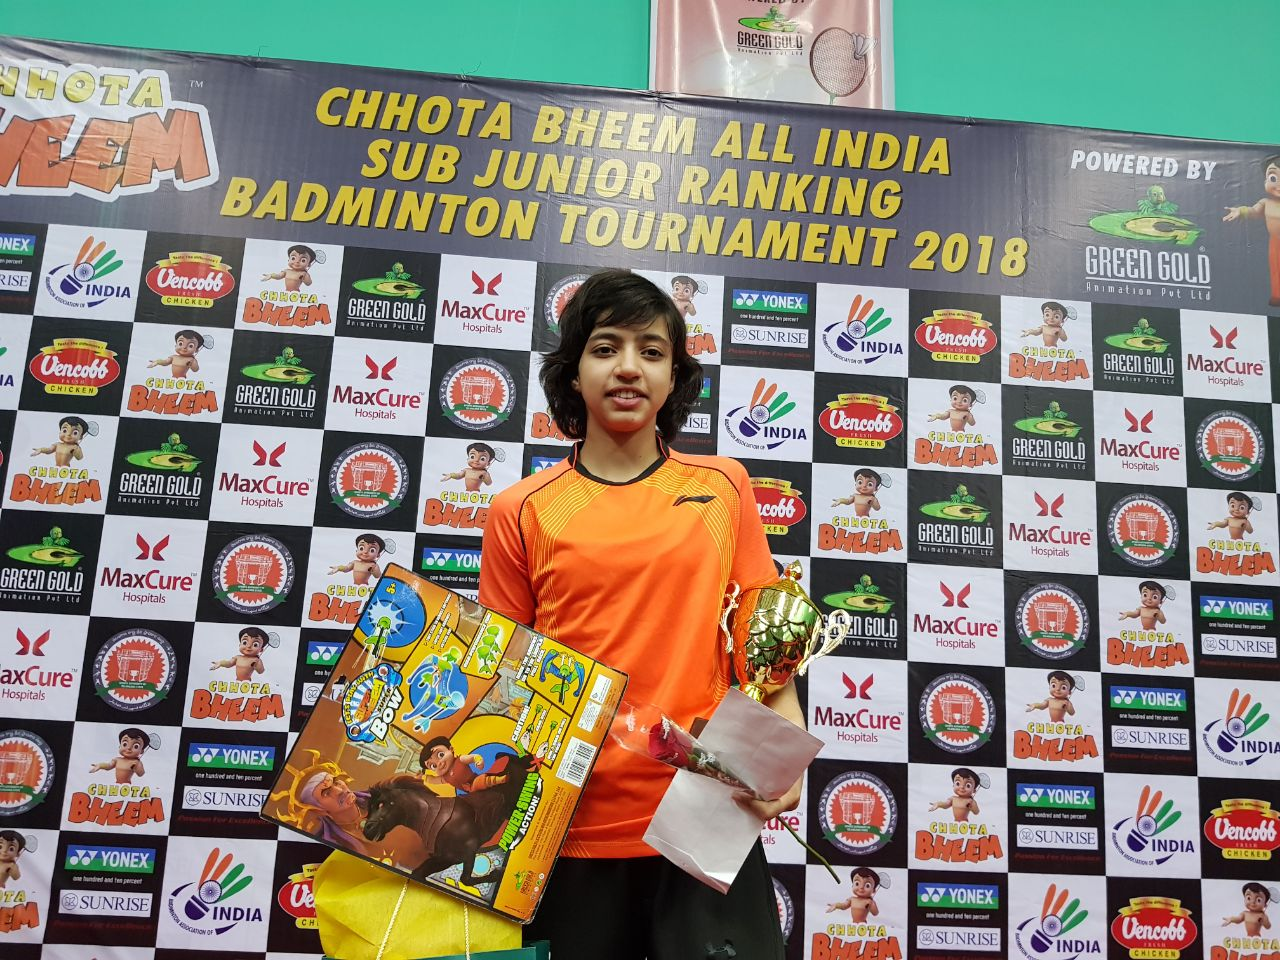 Sub-Junior All India Badminton Tournament